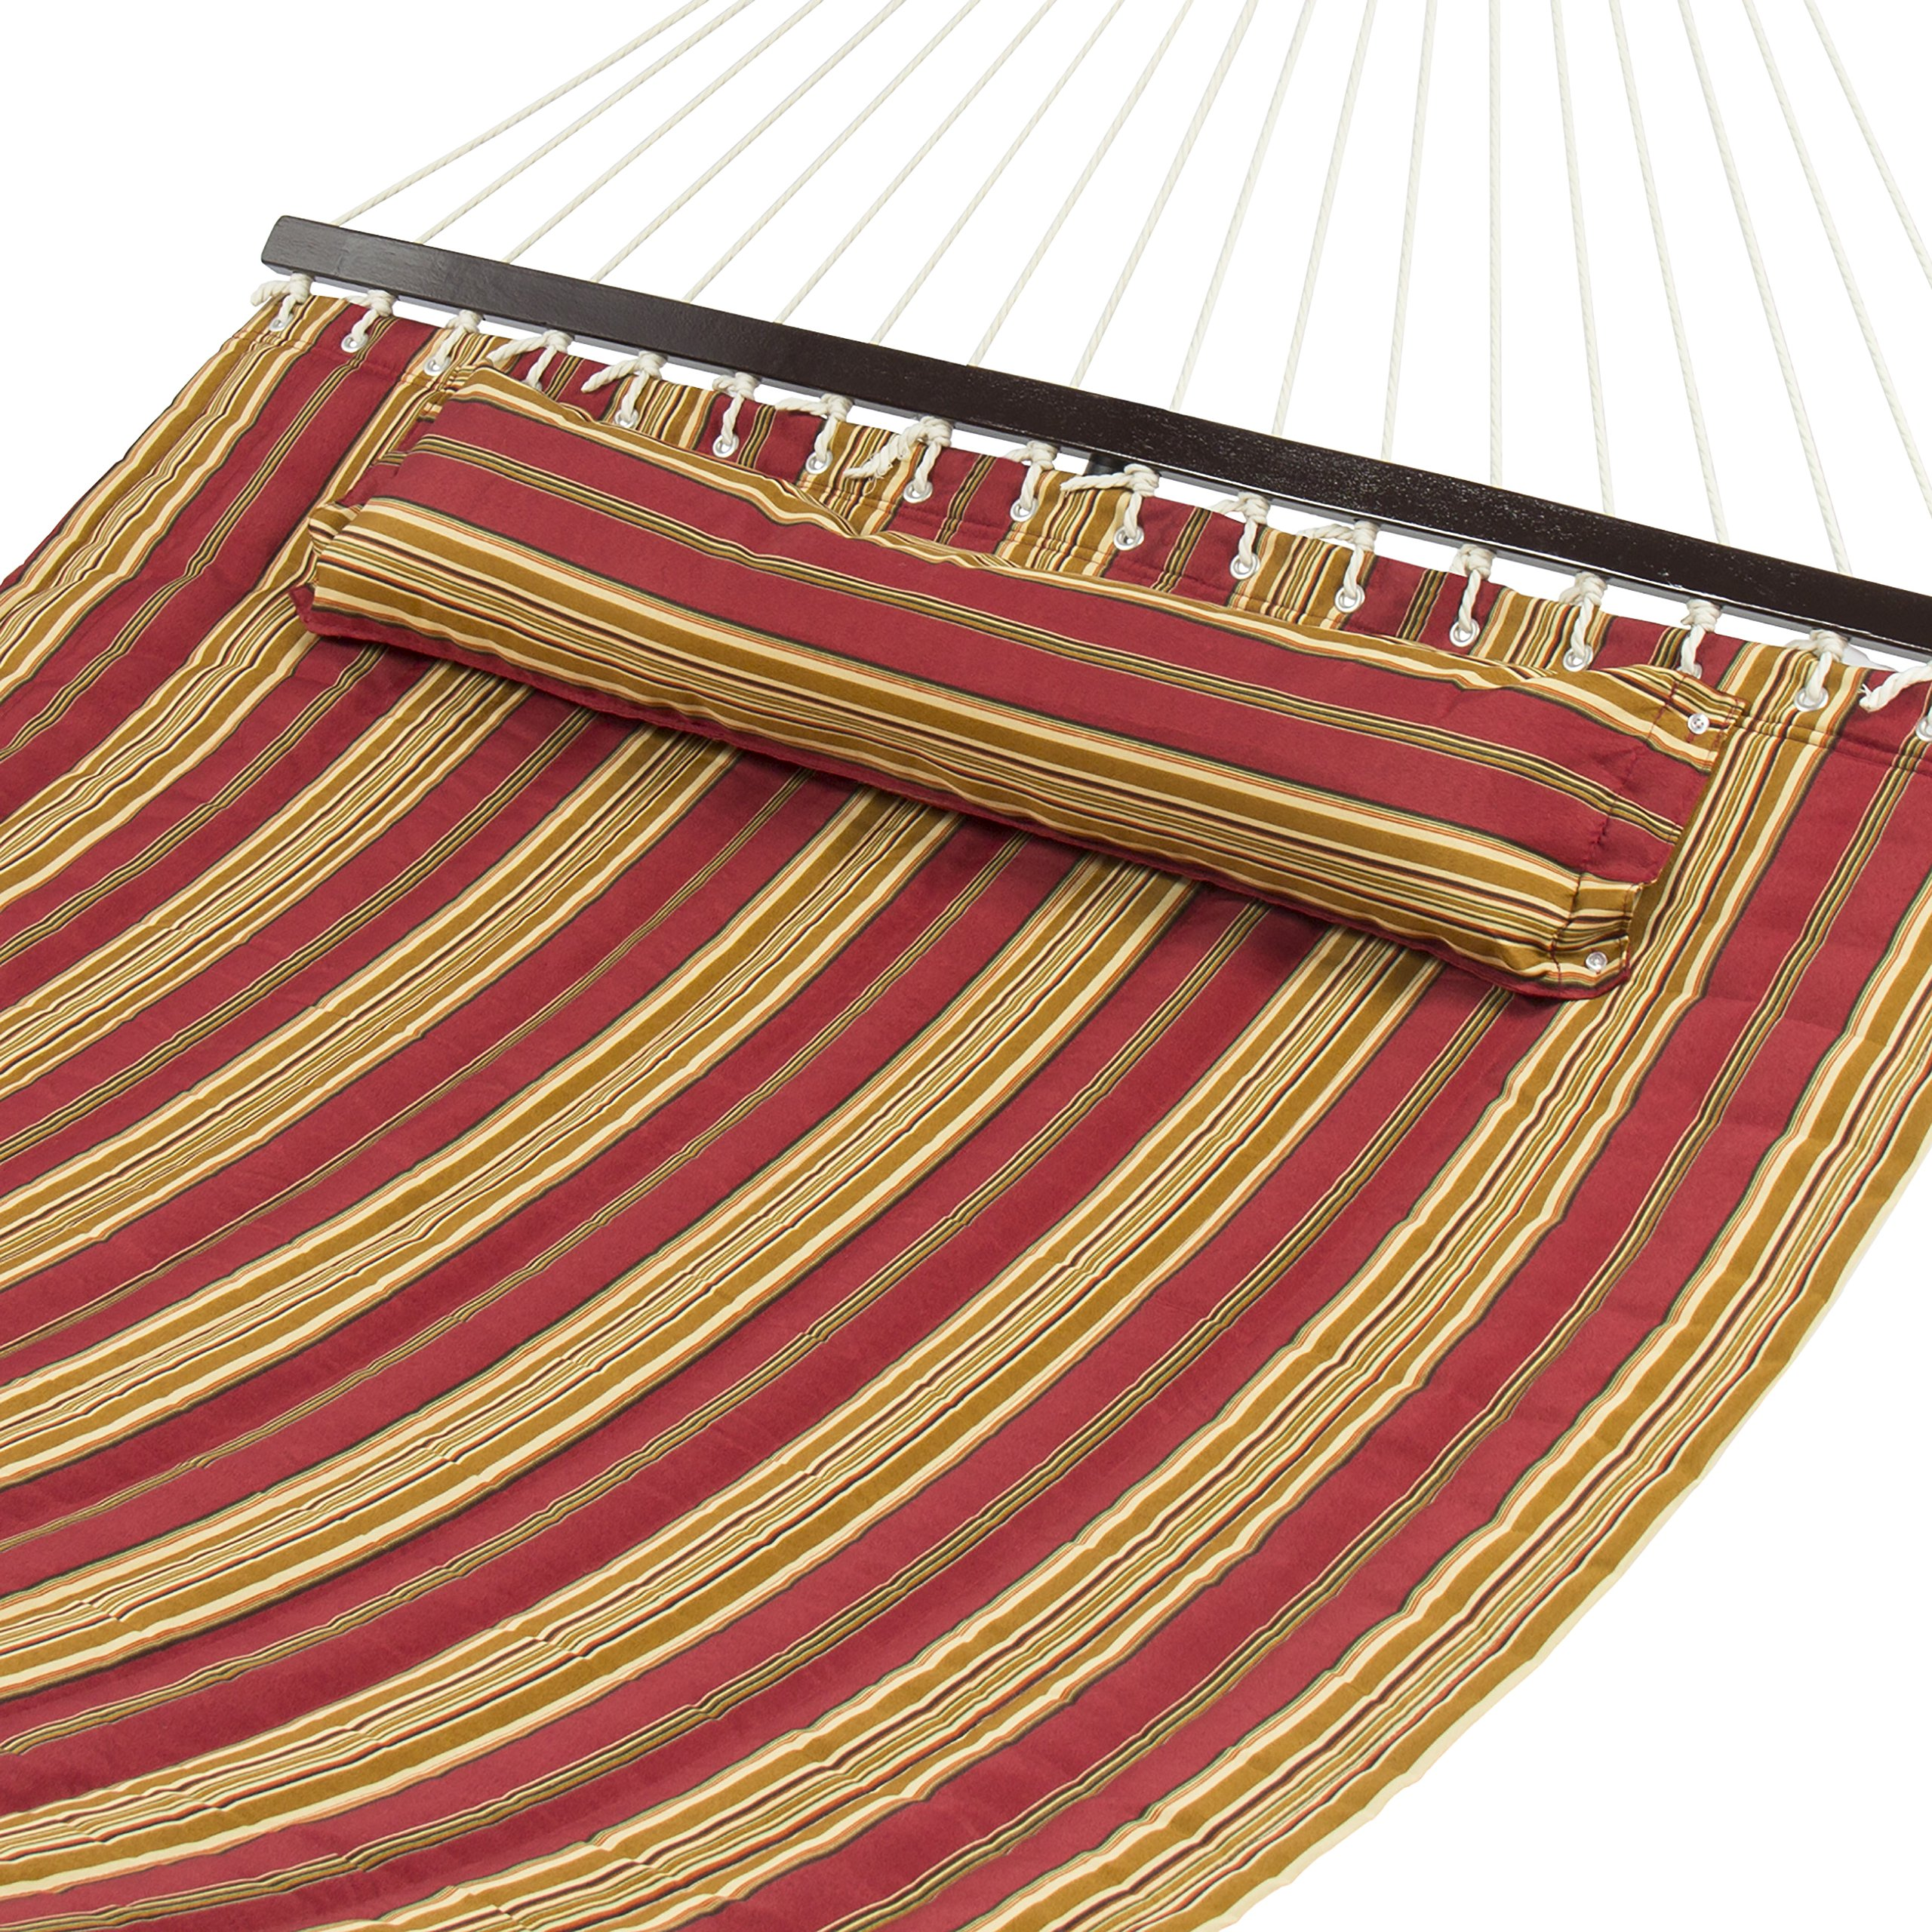 Best Choice Products Quilted Double Hammock w/Detachable Pillow, Spreader Bar - Burgundy and Tan Stripe